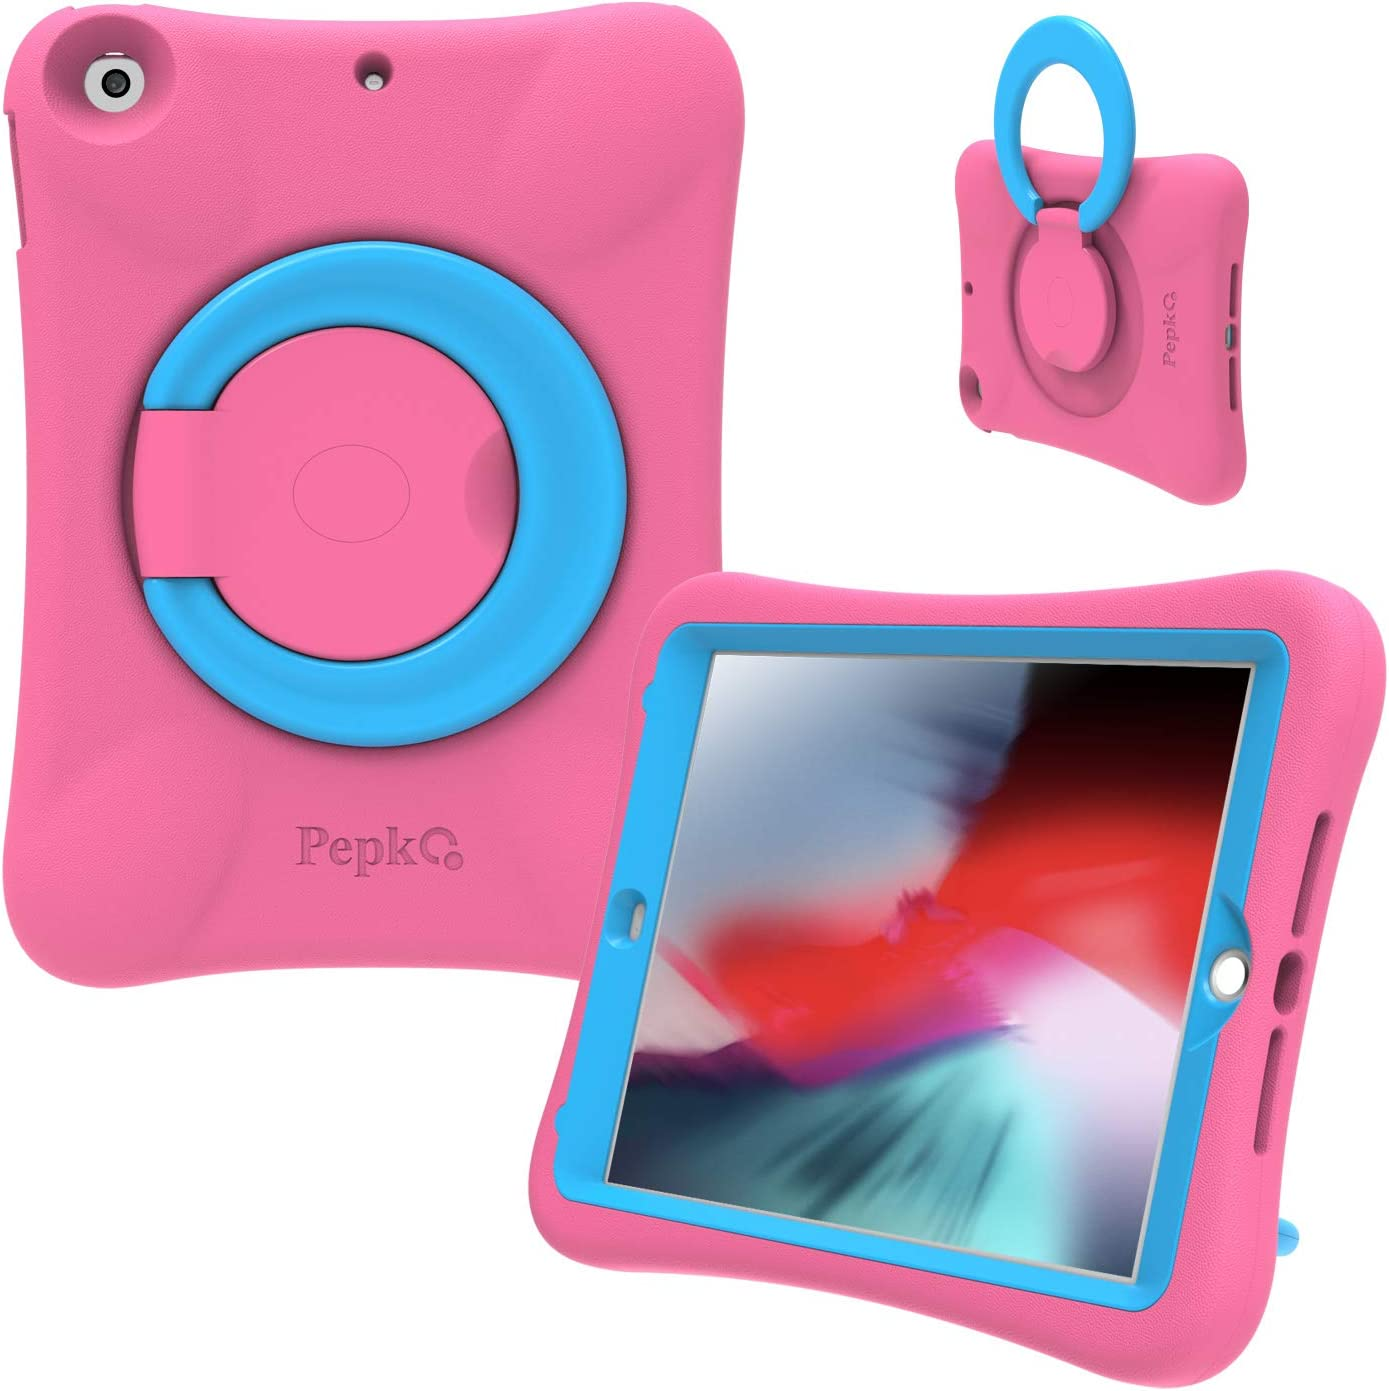 PEPKOO iPad 9.7 2017/2018 Case for Kids - Lightweight Shockproof Handle Stand Rugged Cover for Apple iPad 6th Generation/5th Gen/Air/Air 2 (Pink/Blue)